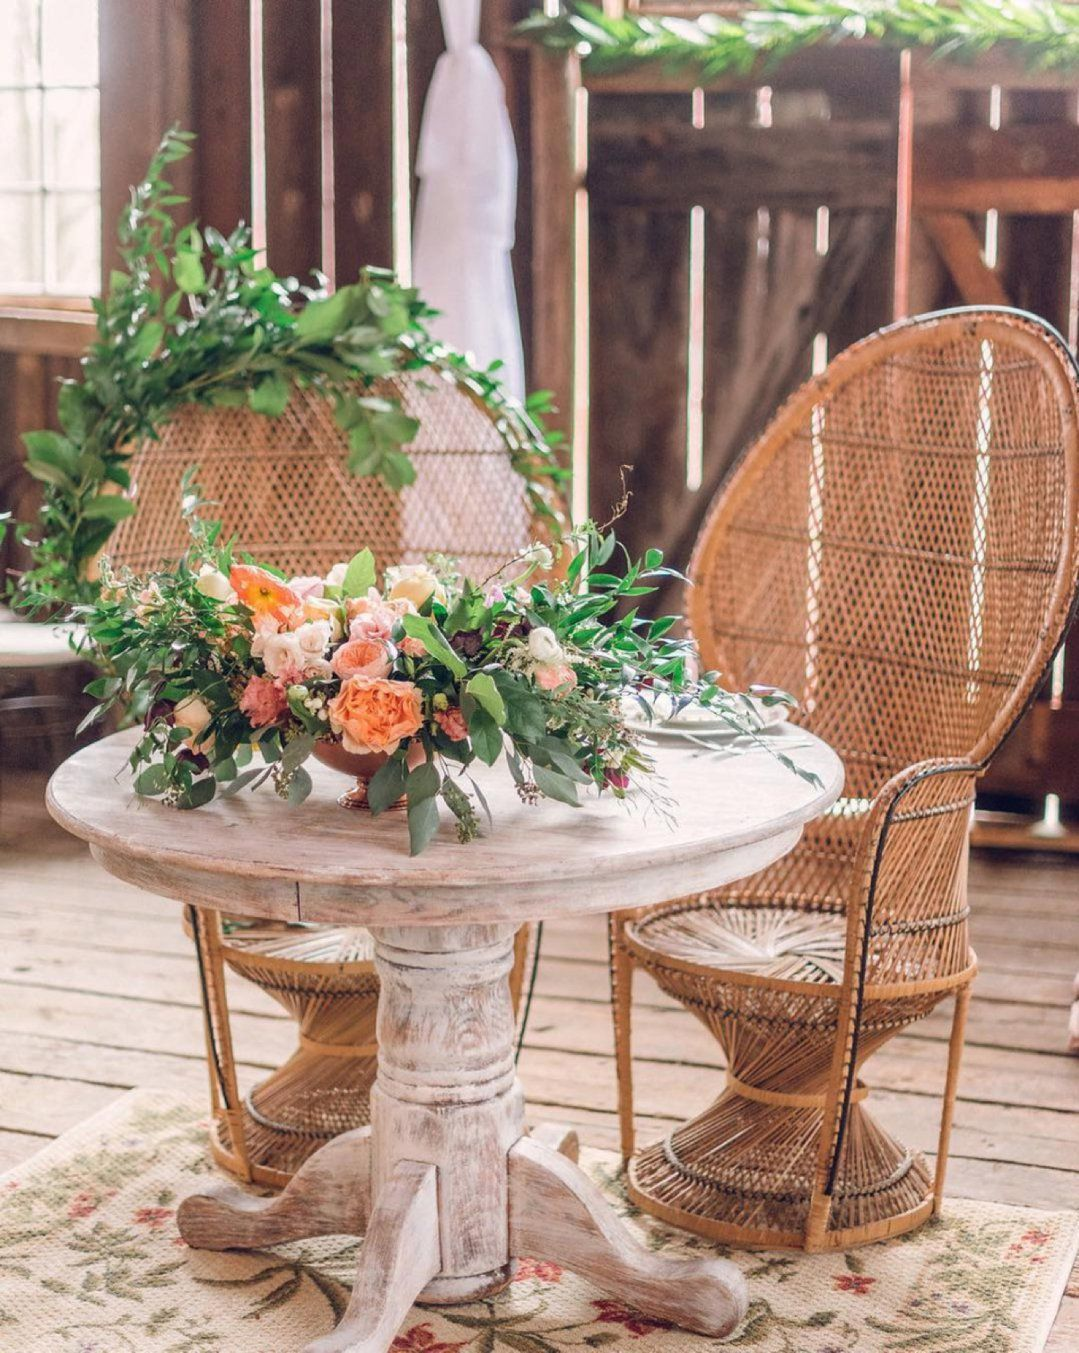 All about rattan wicker peacock chair wedding chairs